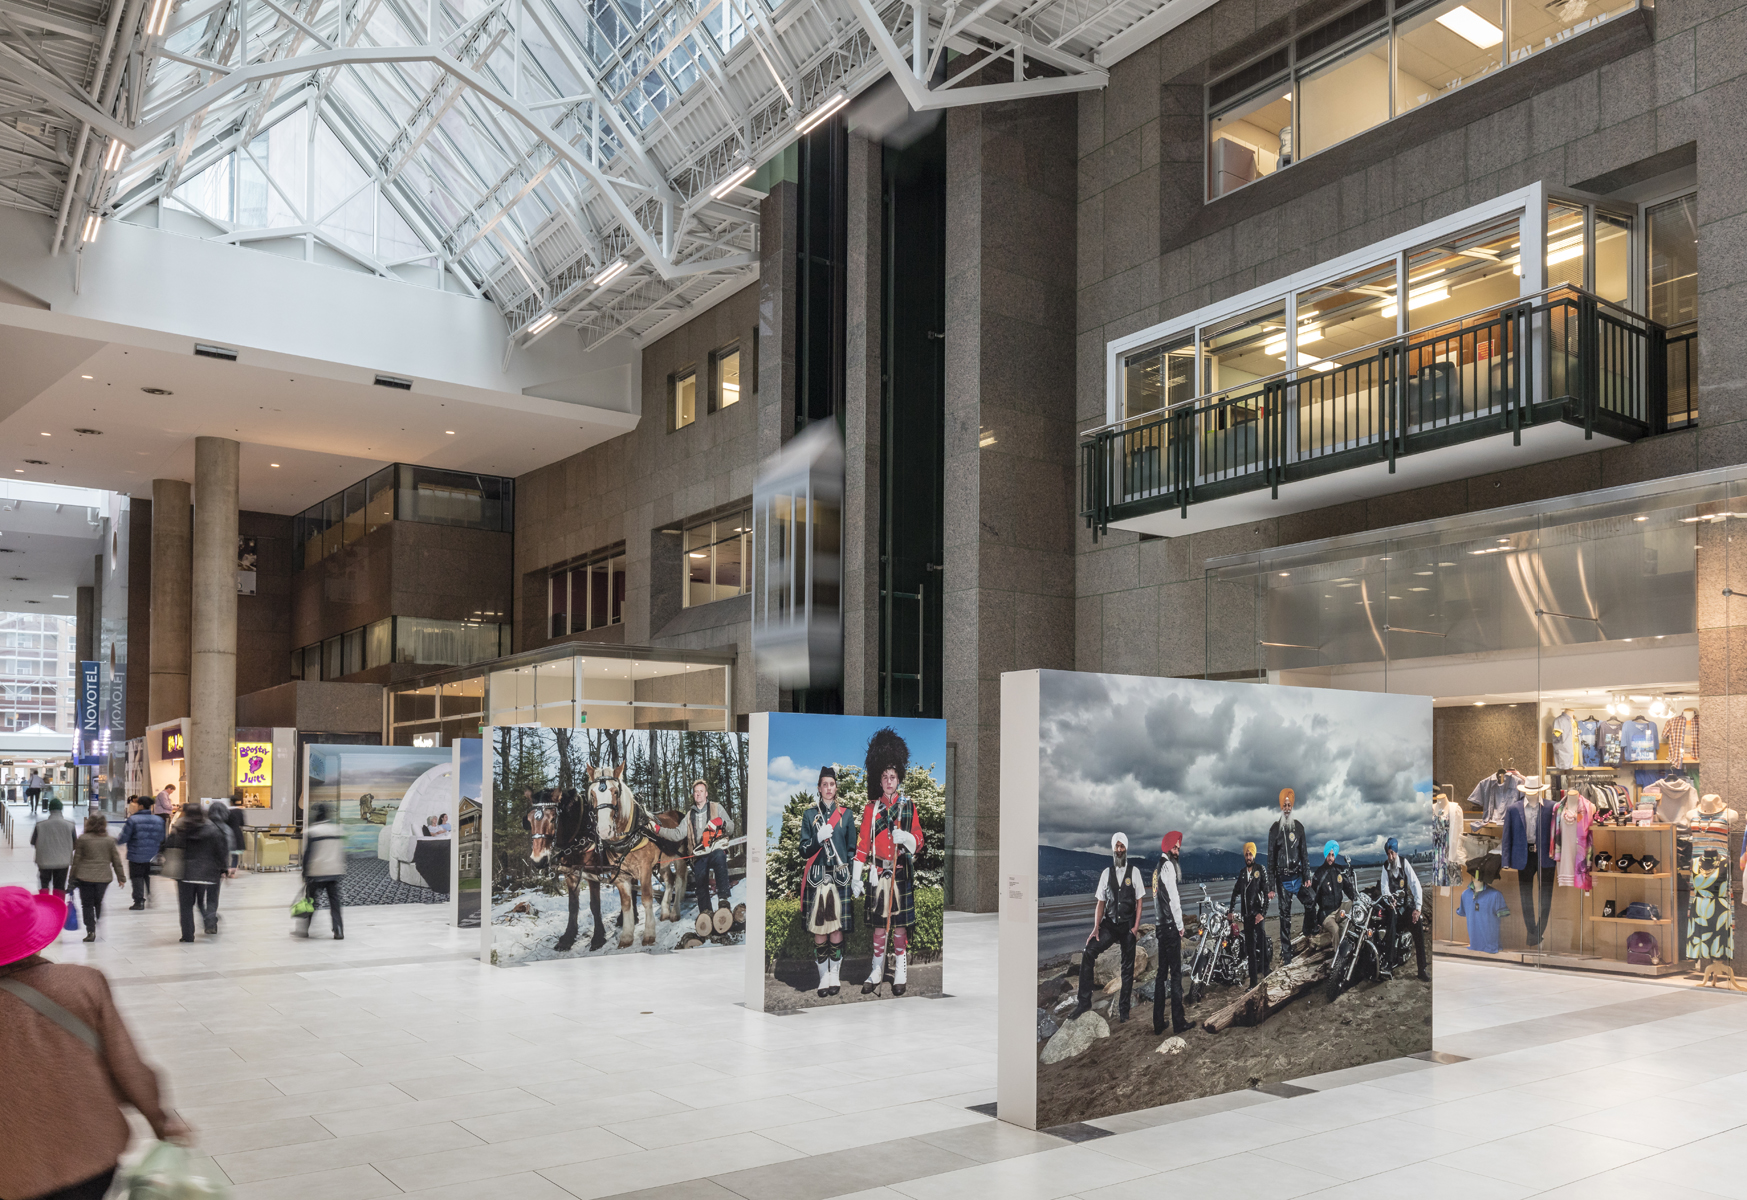 Naomi Harris, OH CANADA!, Installation view at North York Centre, 2017. Photo by Toni Hafkenscheid.